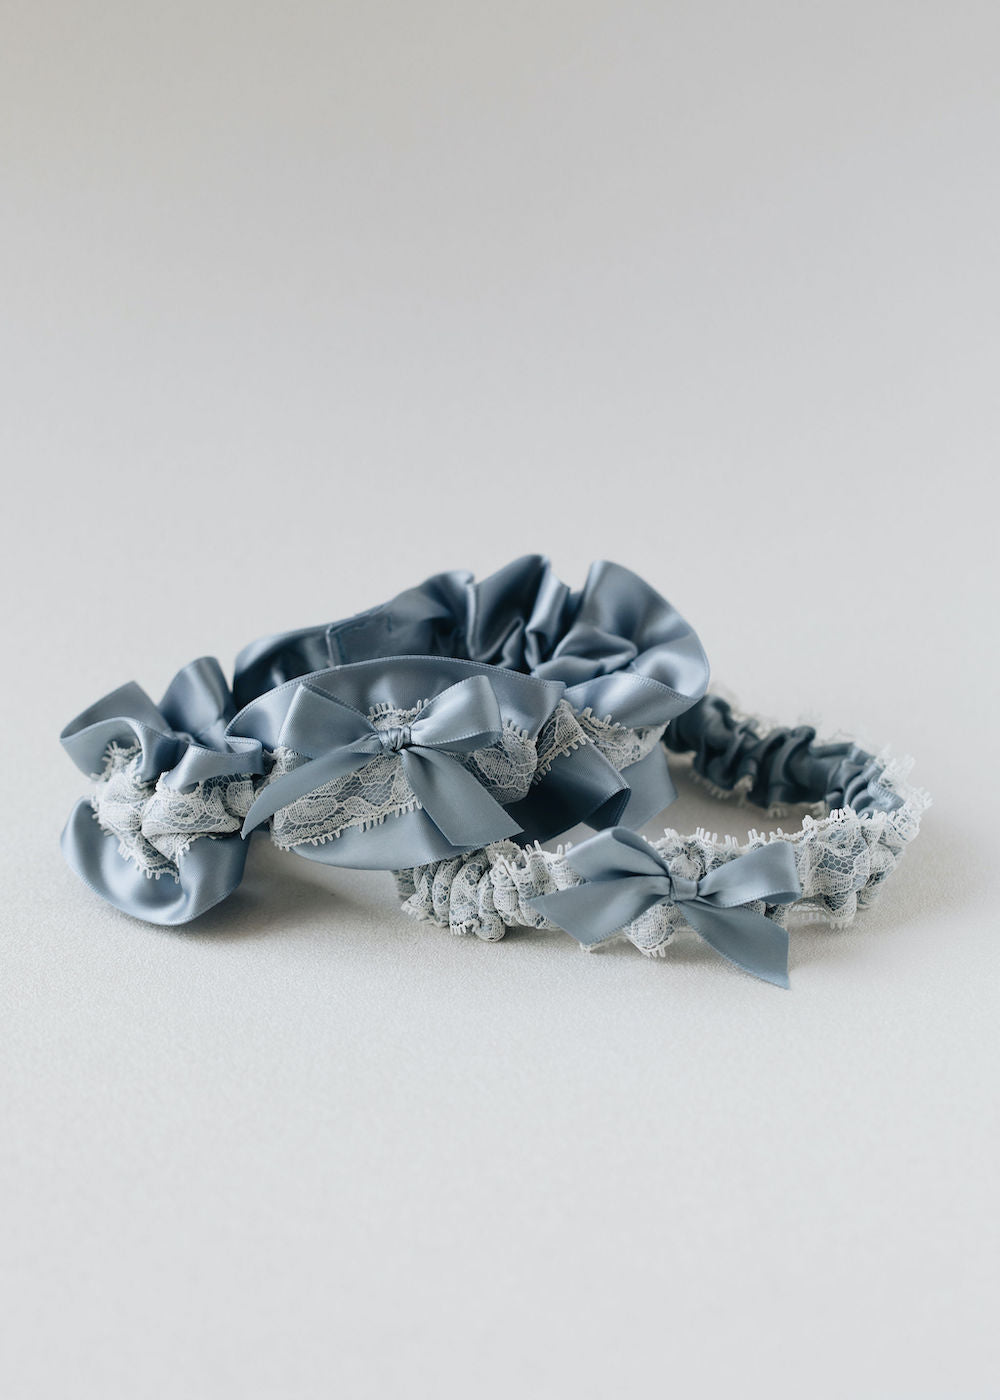 personalized handmade wedding garter set with dusty blue satin and ivory lace by expert bridal heirloom accessories designer, The Garter Girl